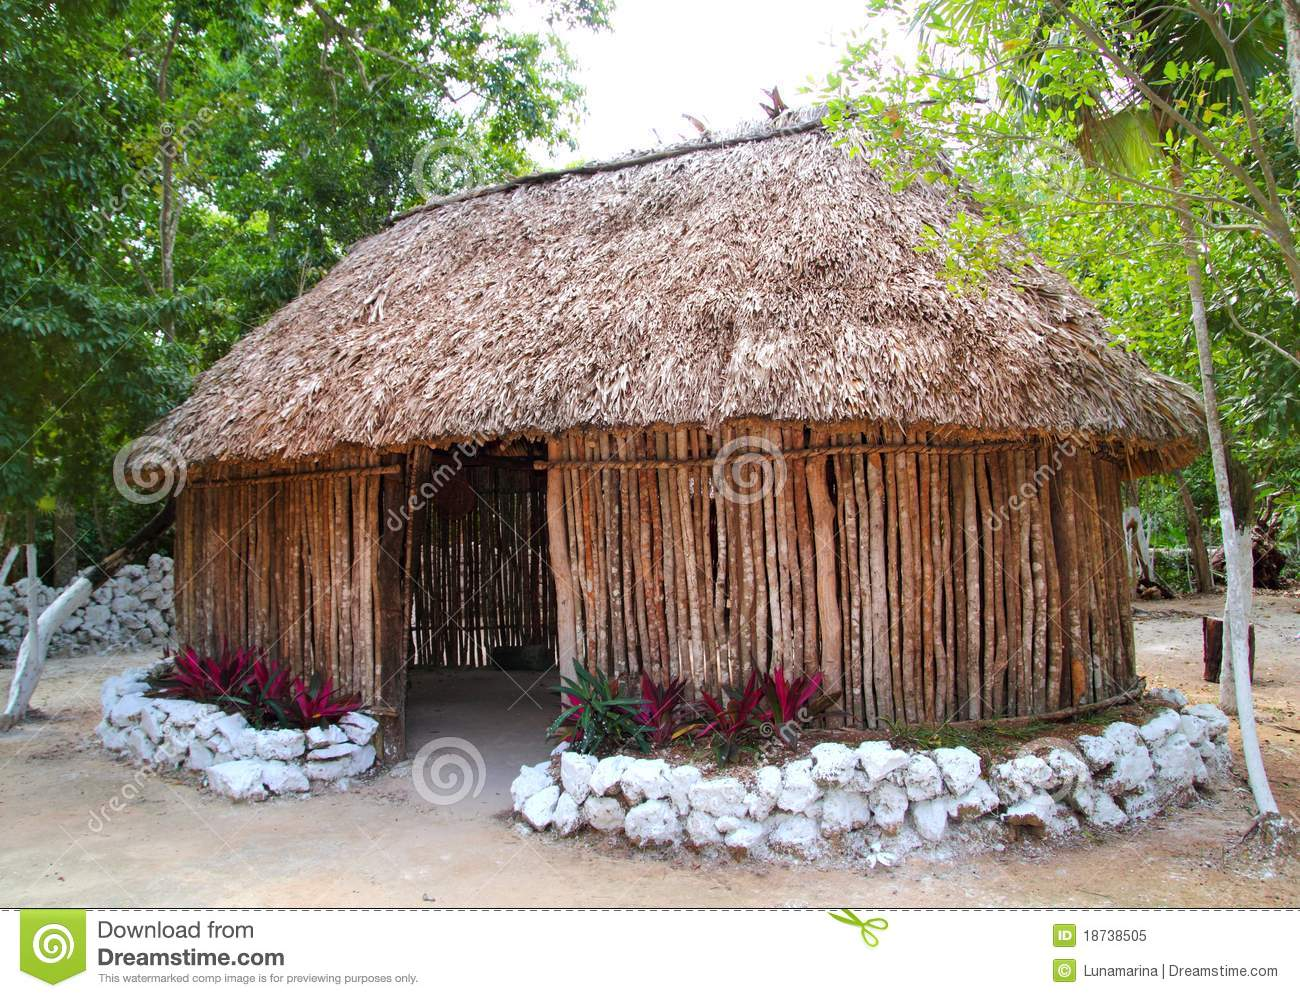 How To Build A Palapa House